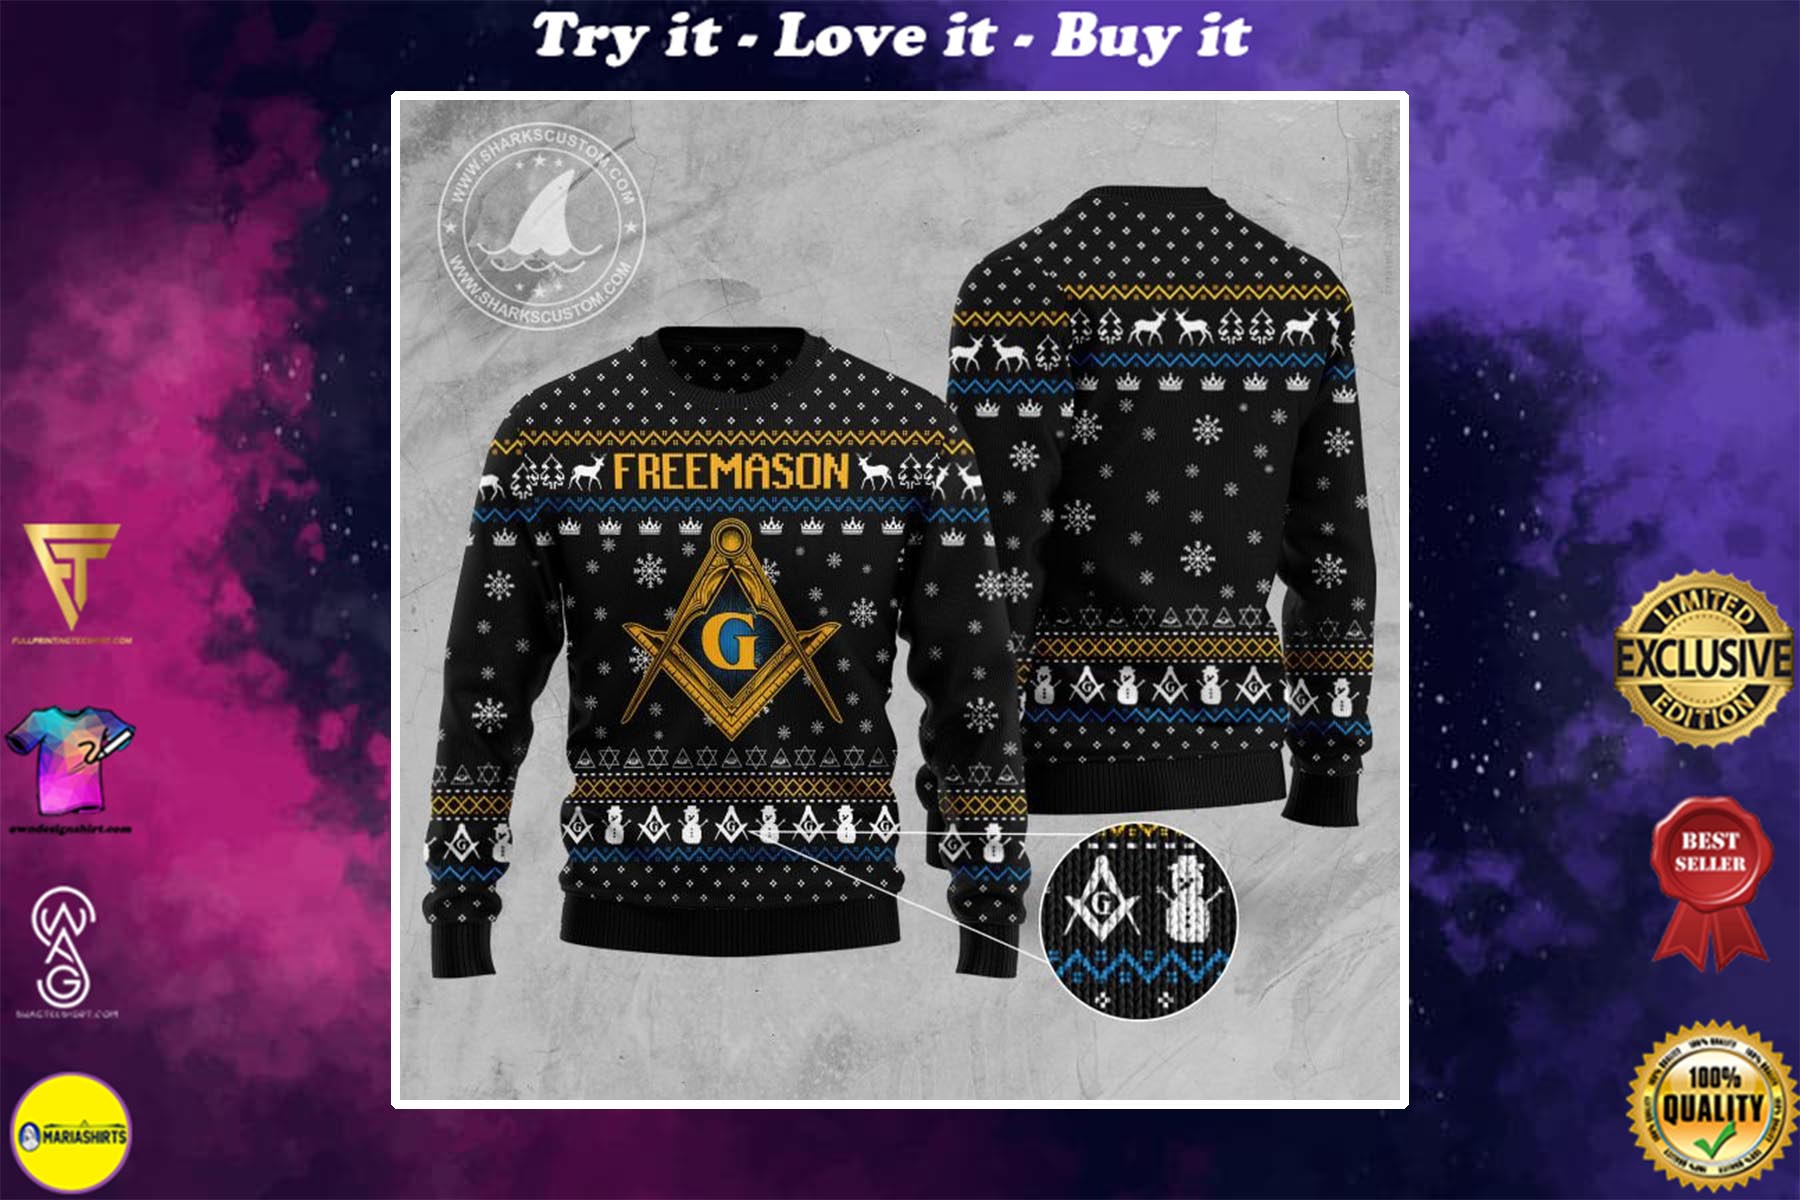 [special edition] freemasonry all over printed ugly christmas sweater - maria